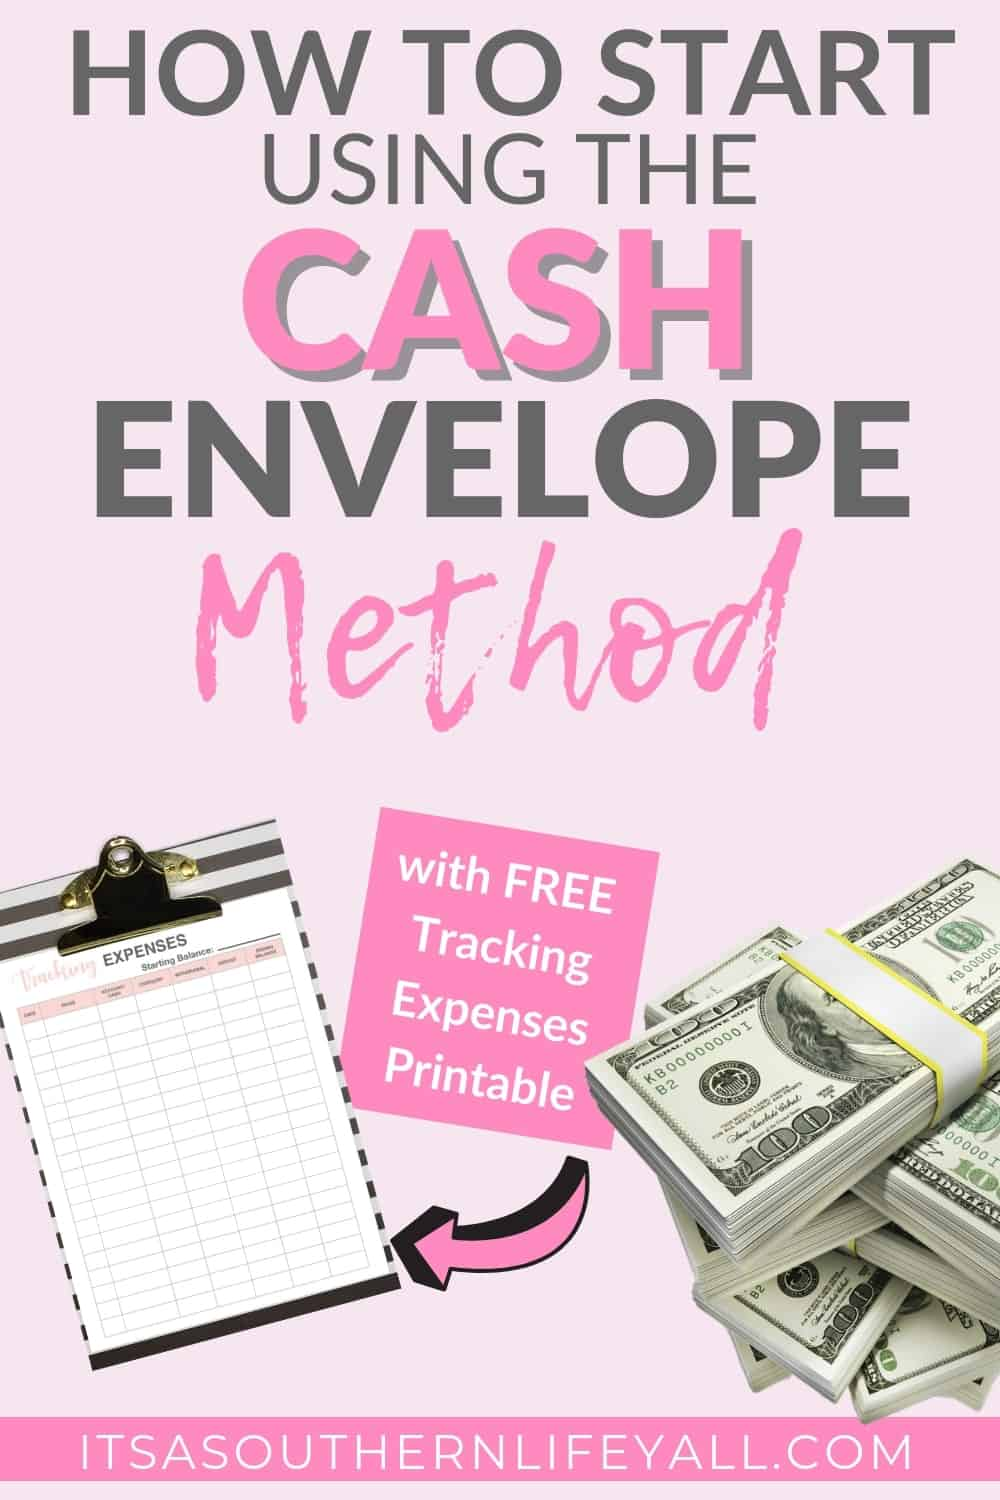 Plain Pin with pink background and clipboard with tracking expenses printable image. Pin also includes stack of money and How to start using cash envelope method text overlay.